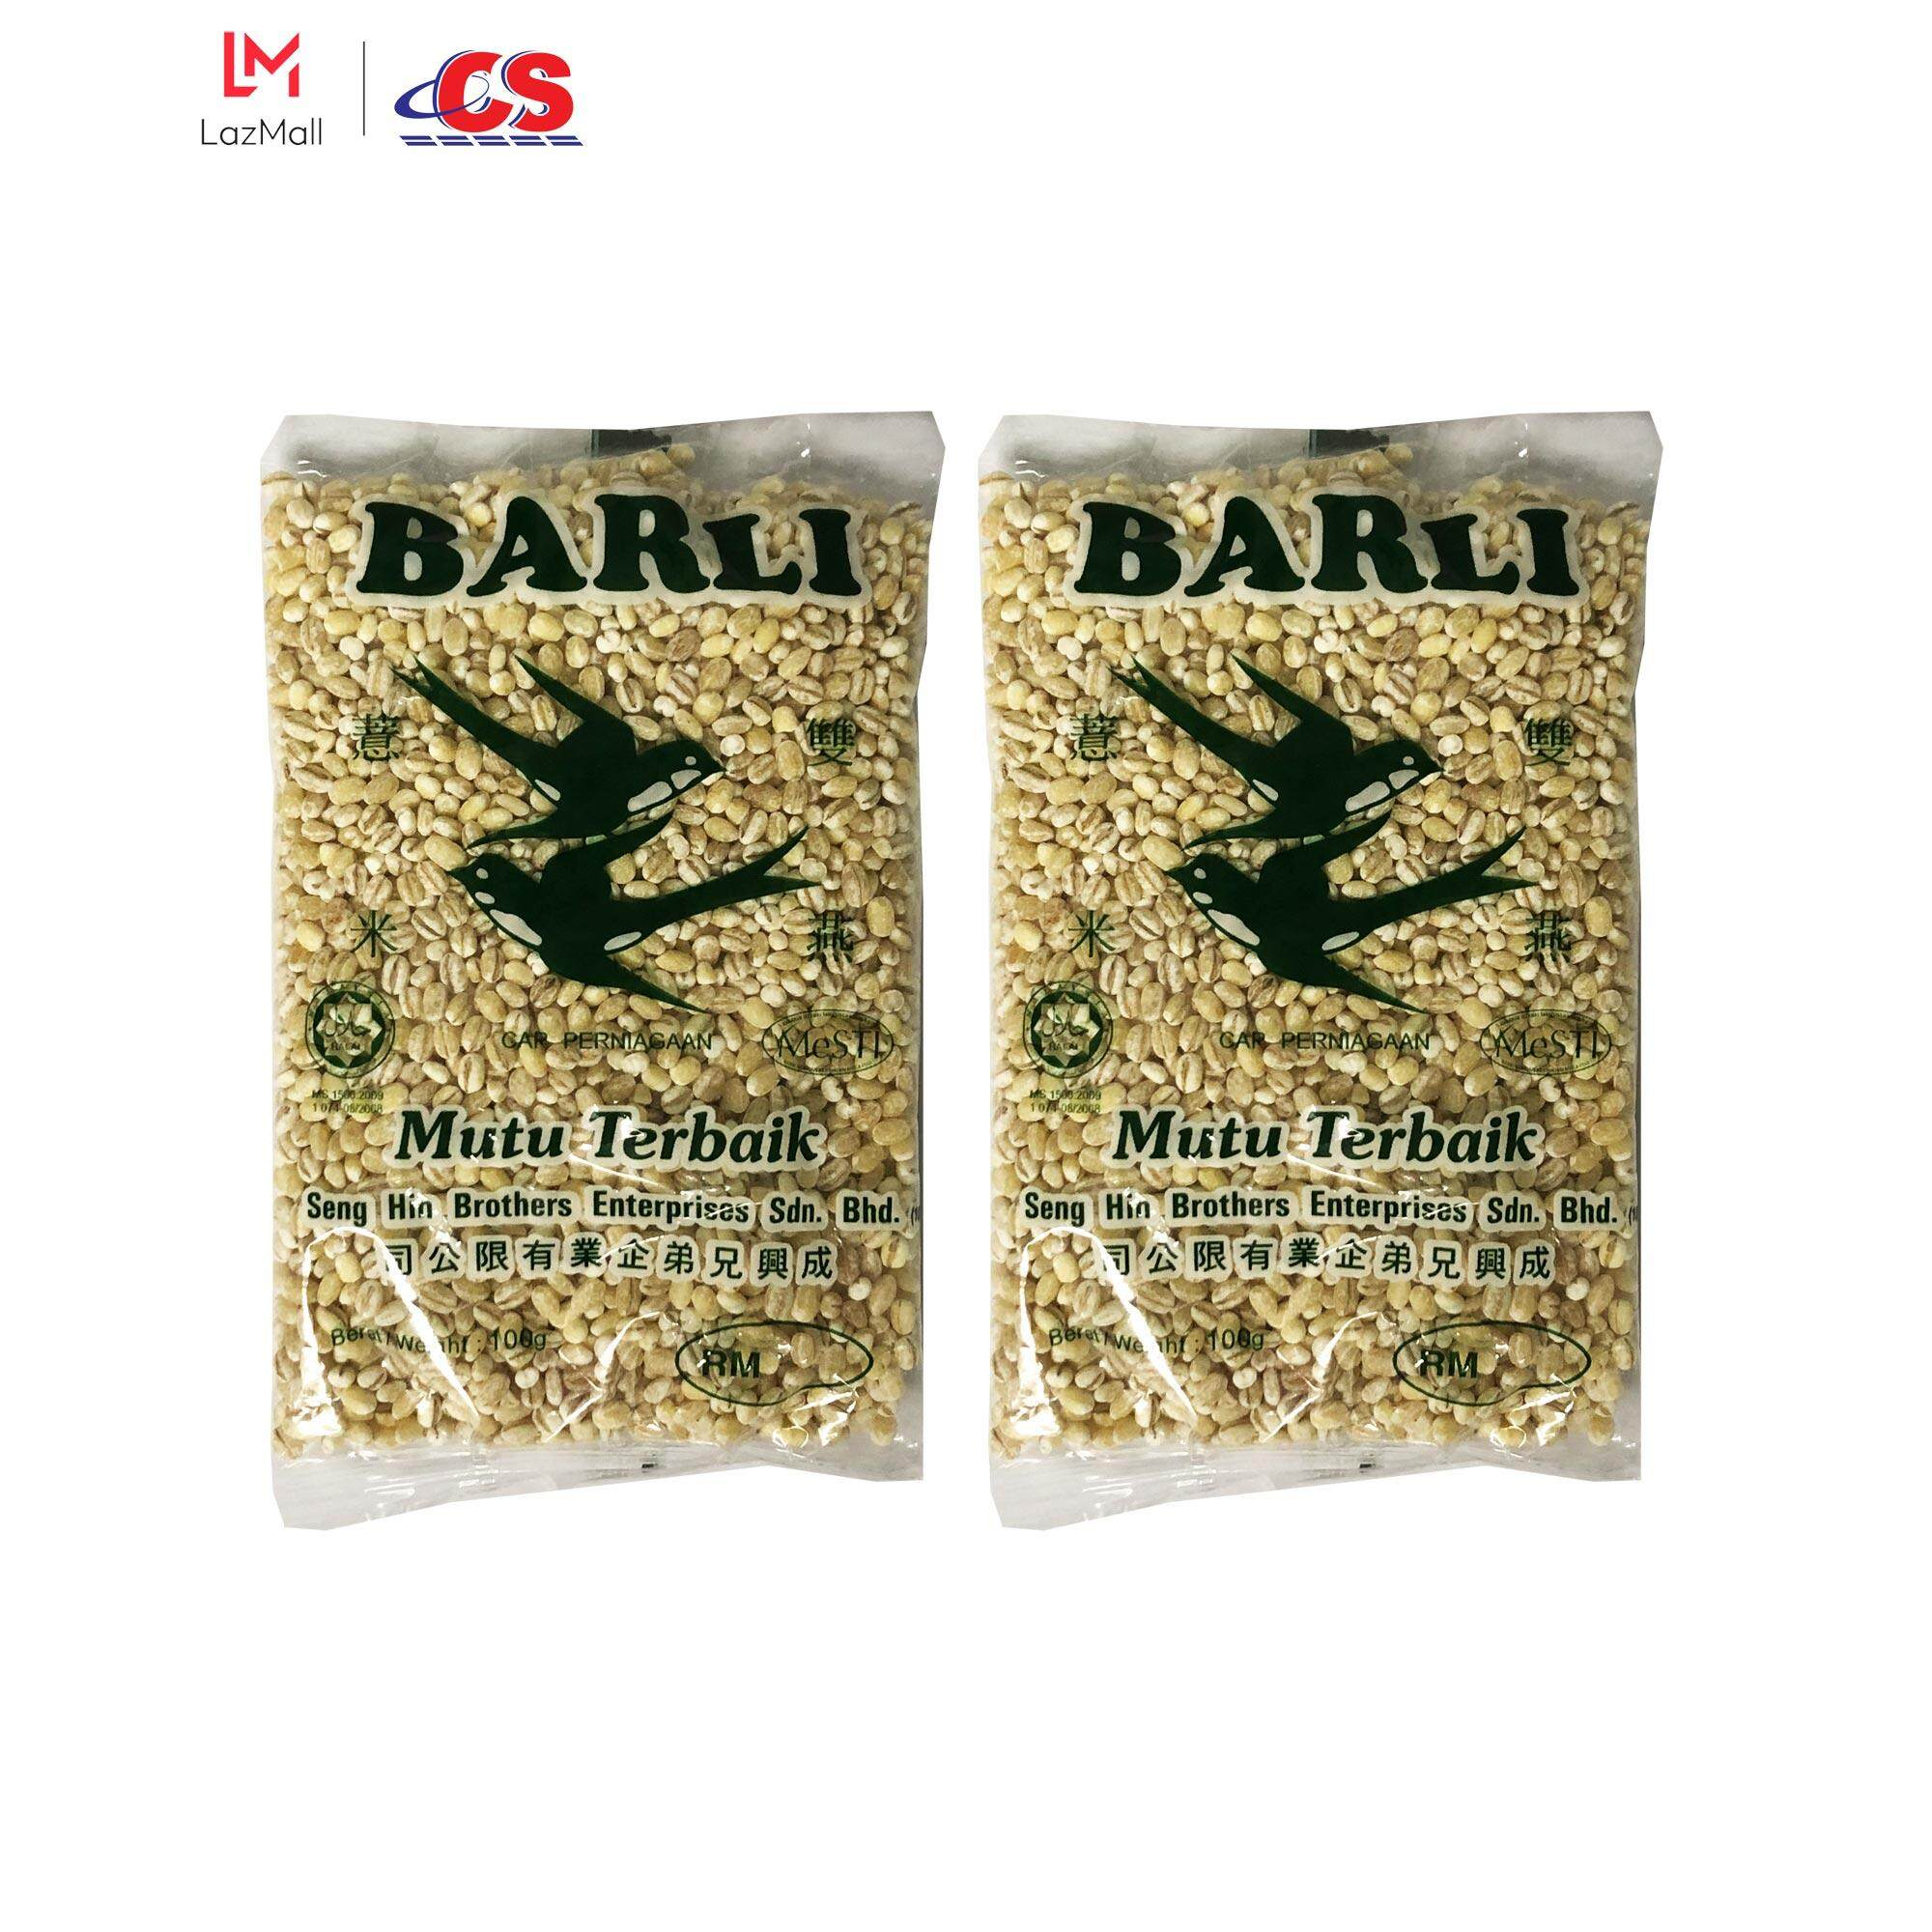 DOUBLE SWALLOW Pearl Barley 2 x 100g